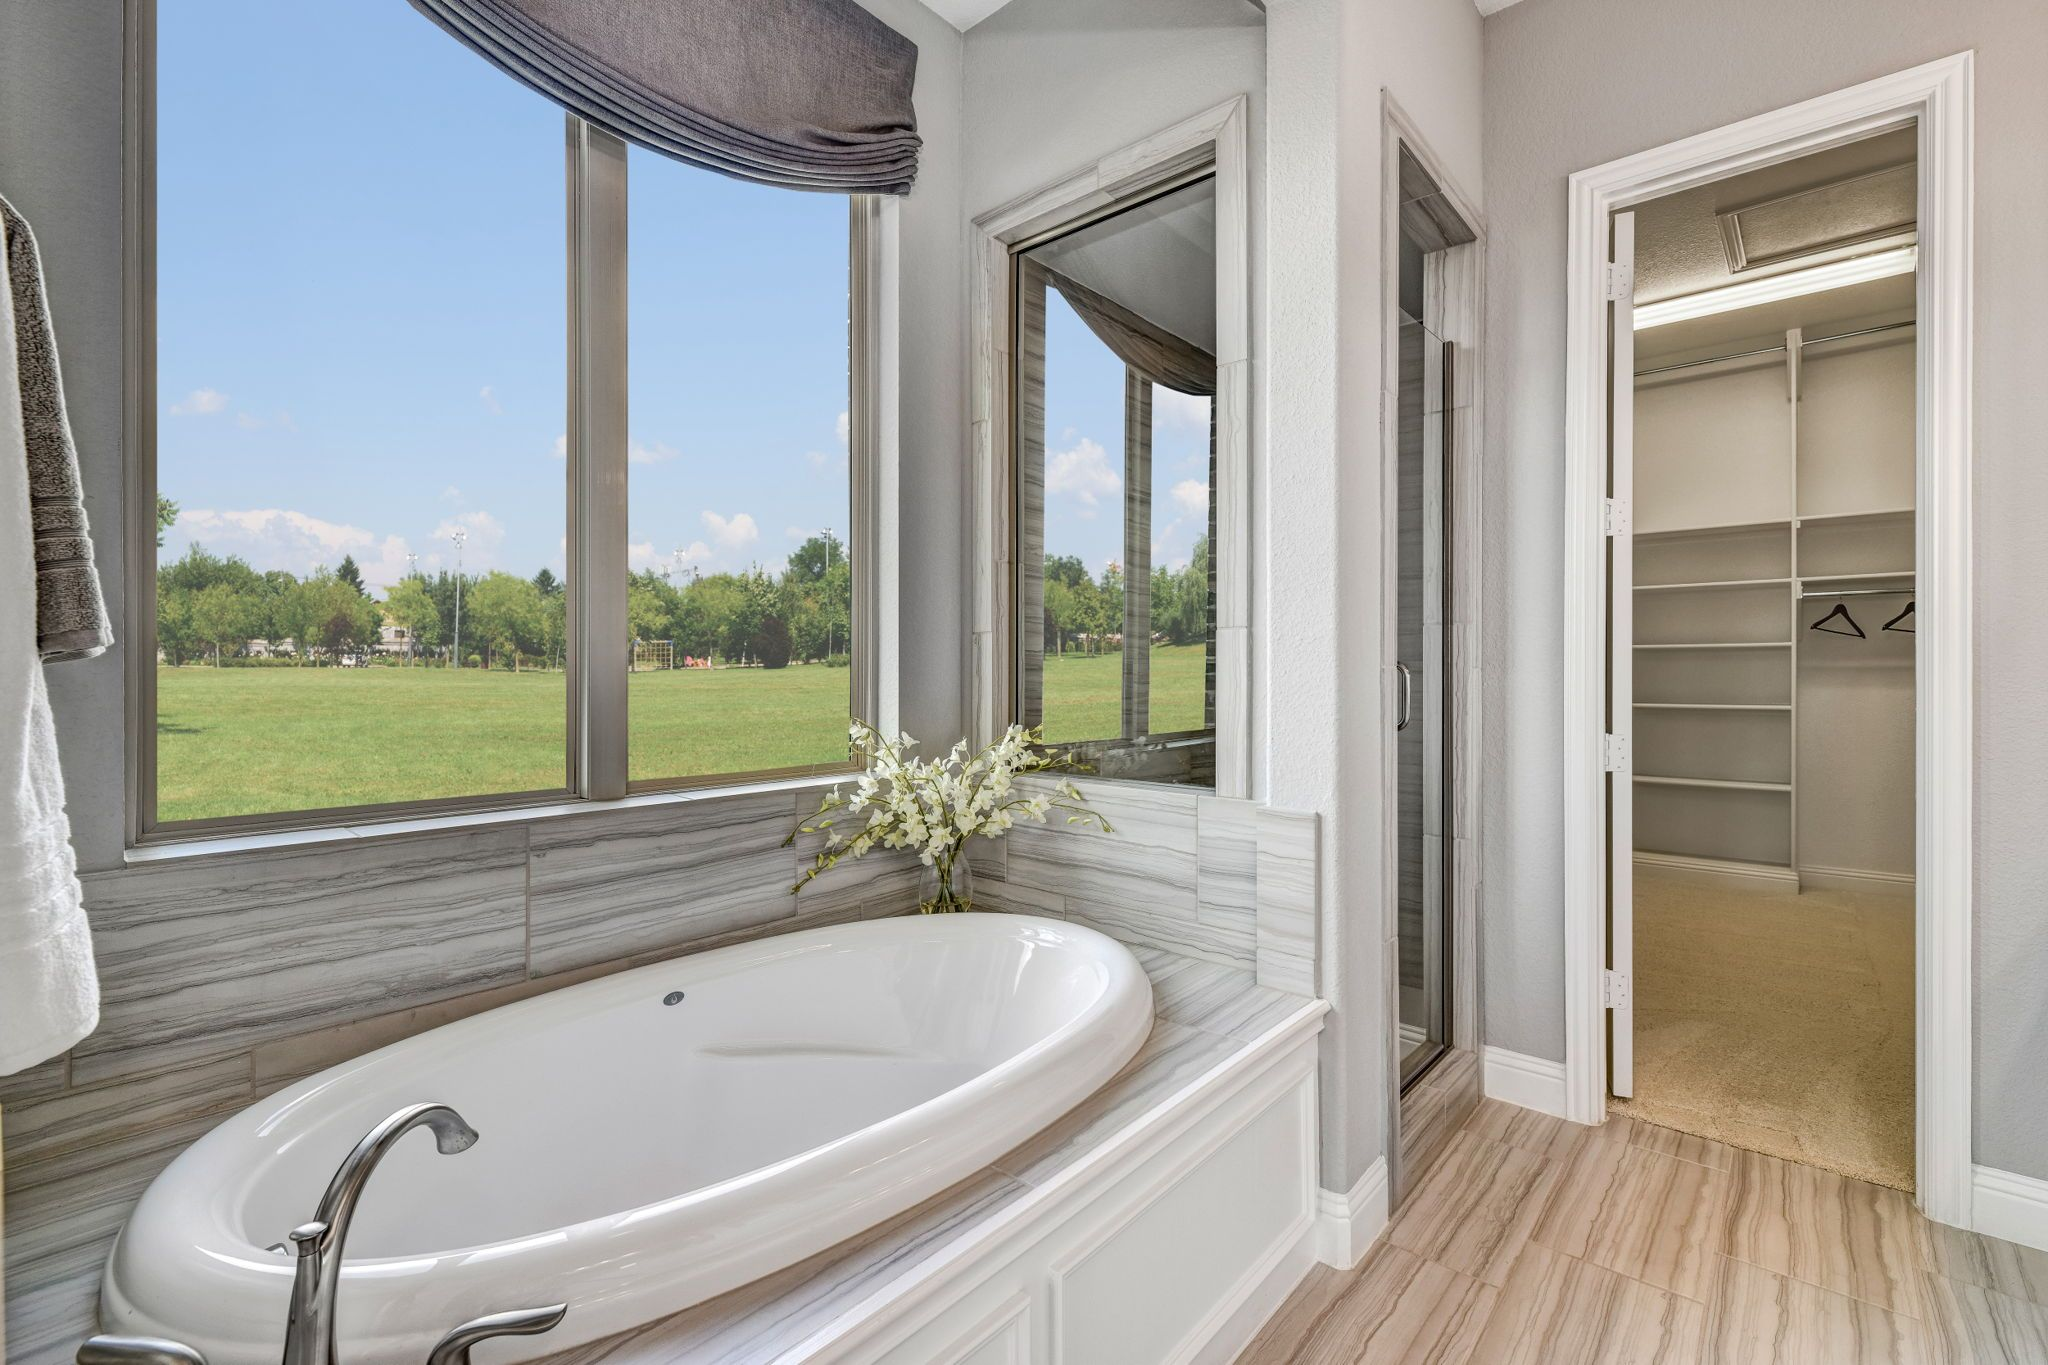 Bathroom featured in the Plan 1163 By American Legend Homes in Dallas, TX